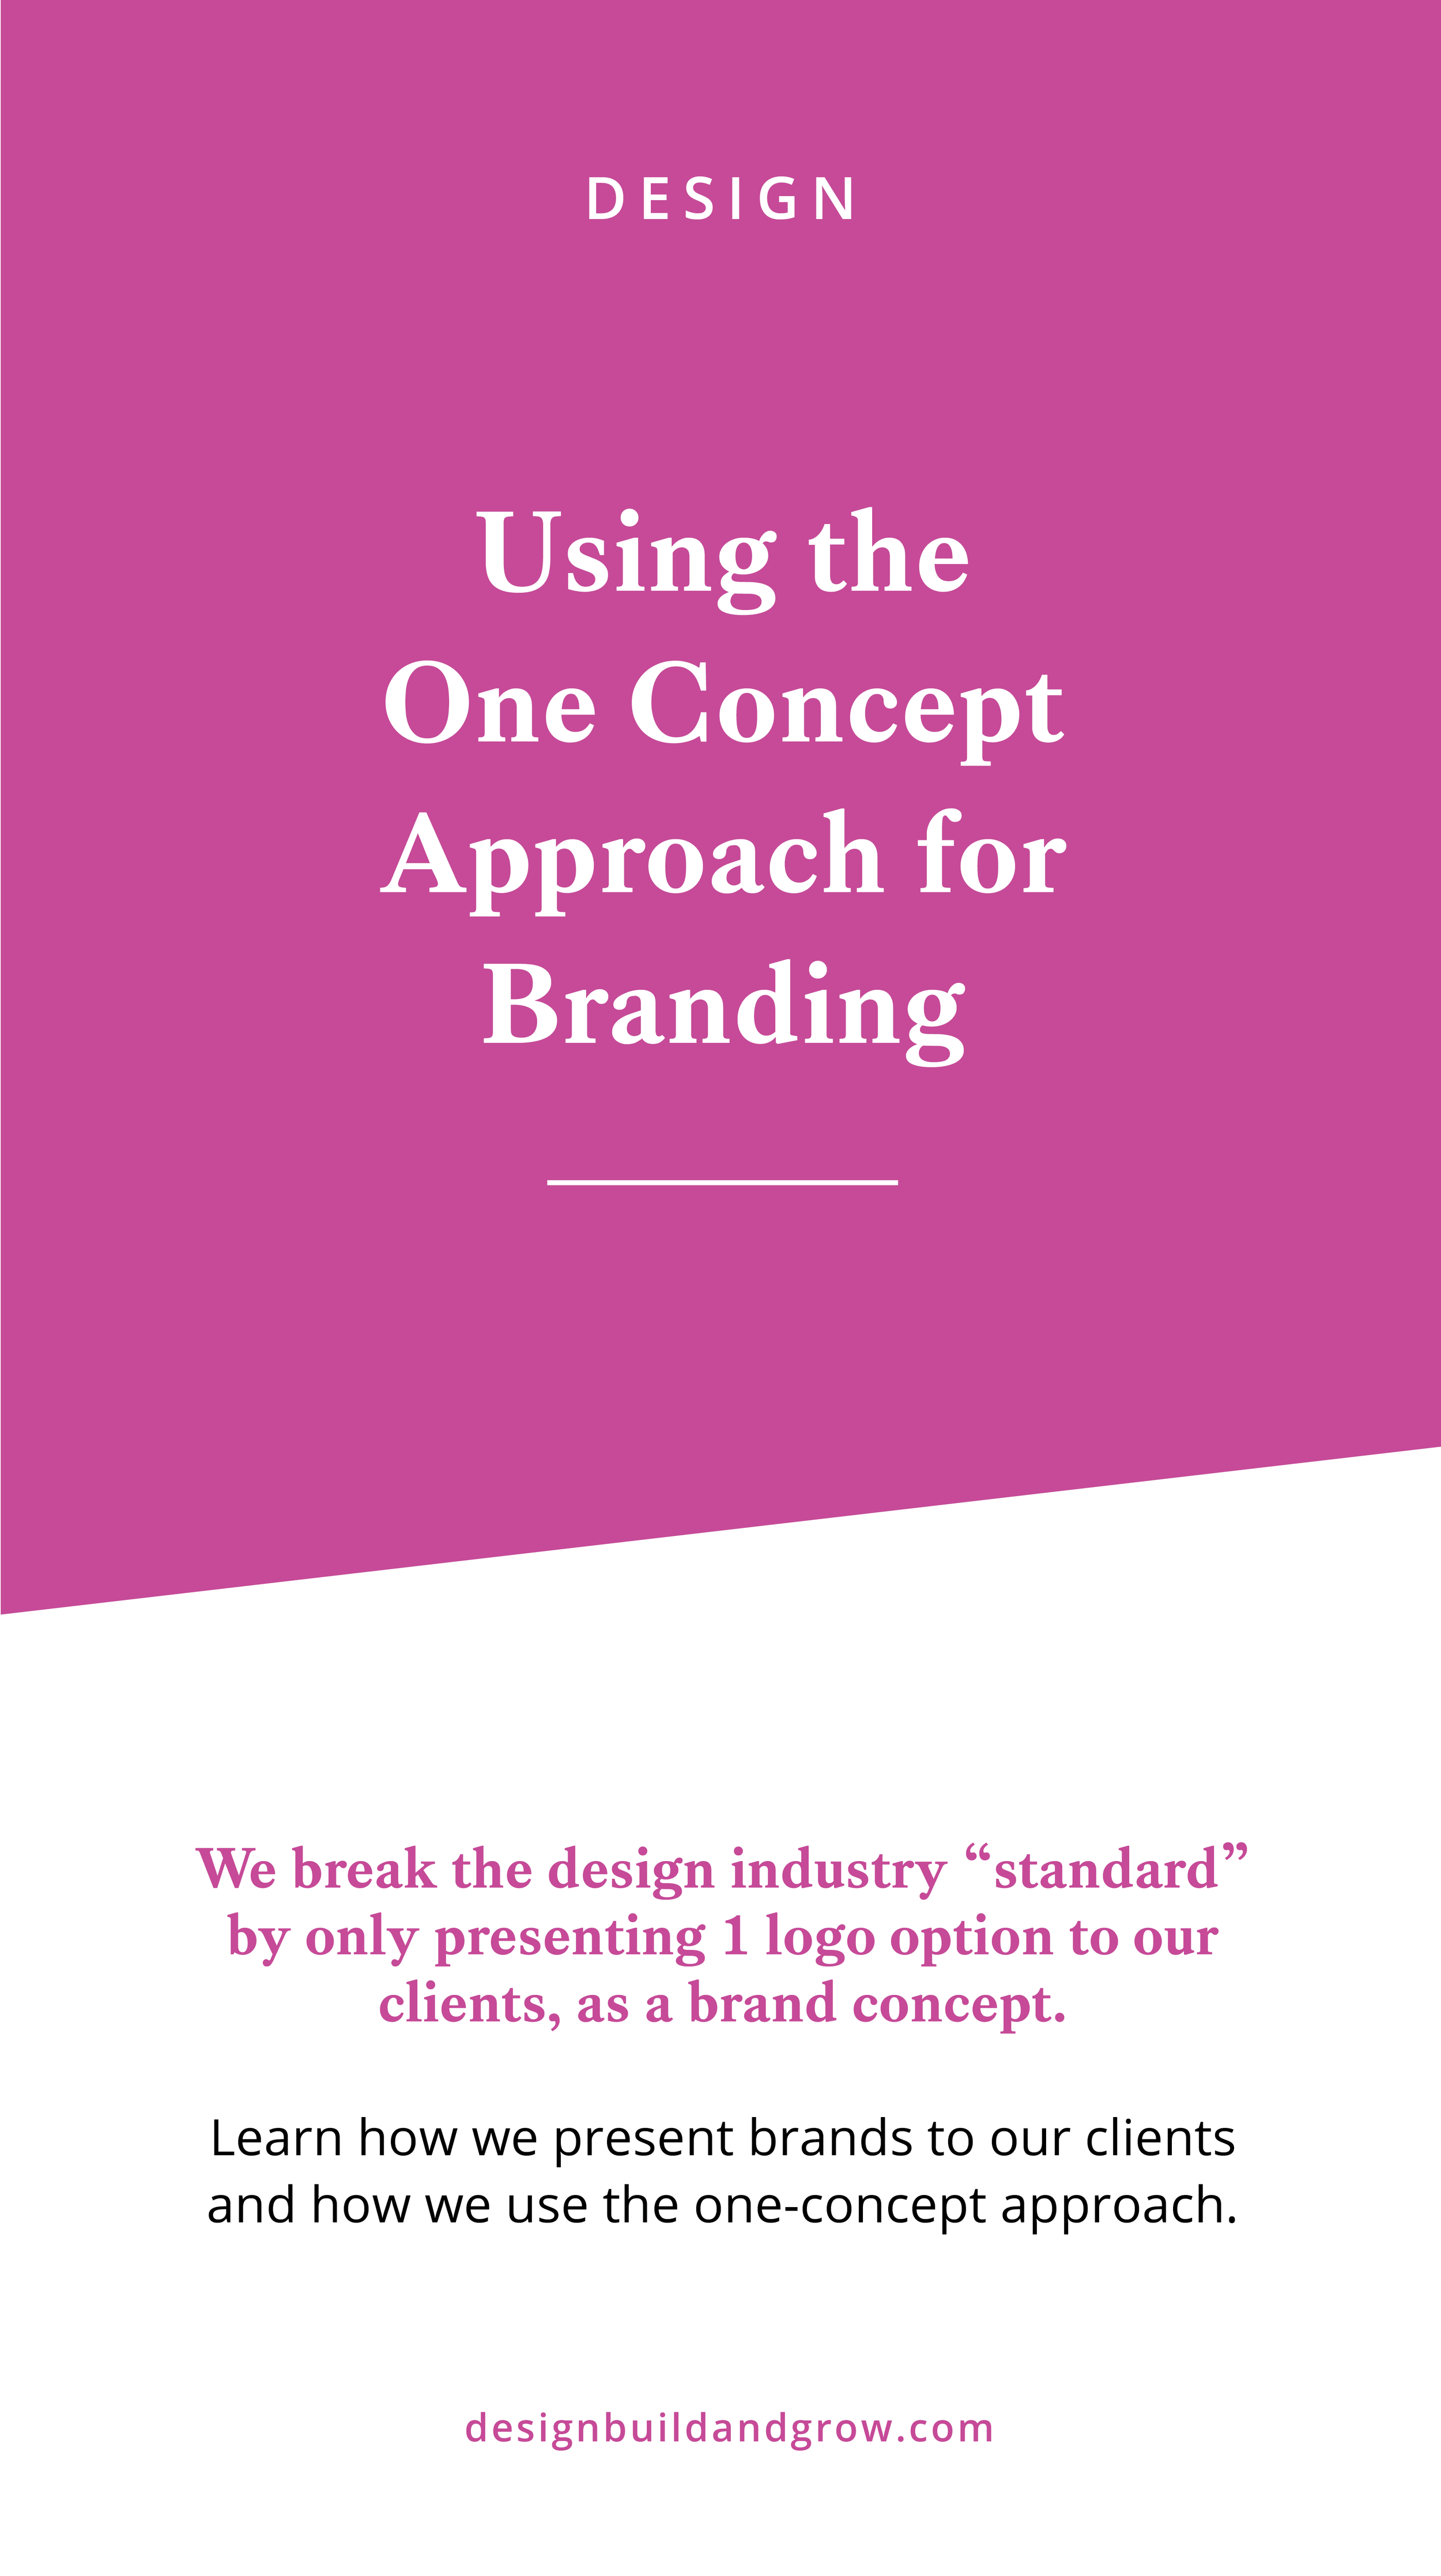 Using the one concept approach to branding